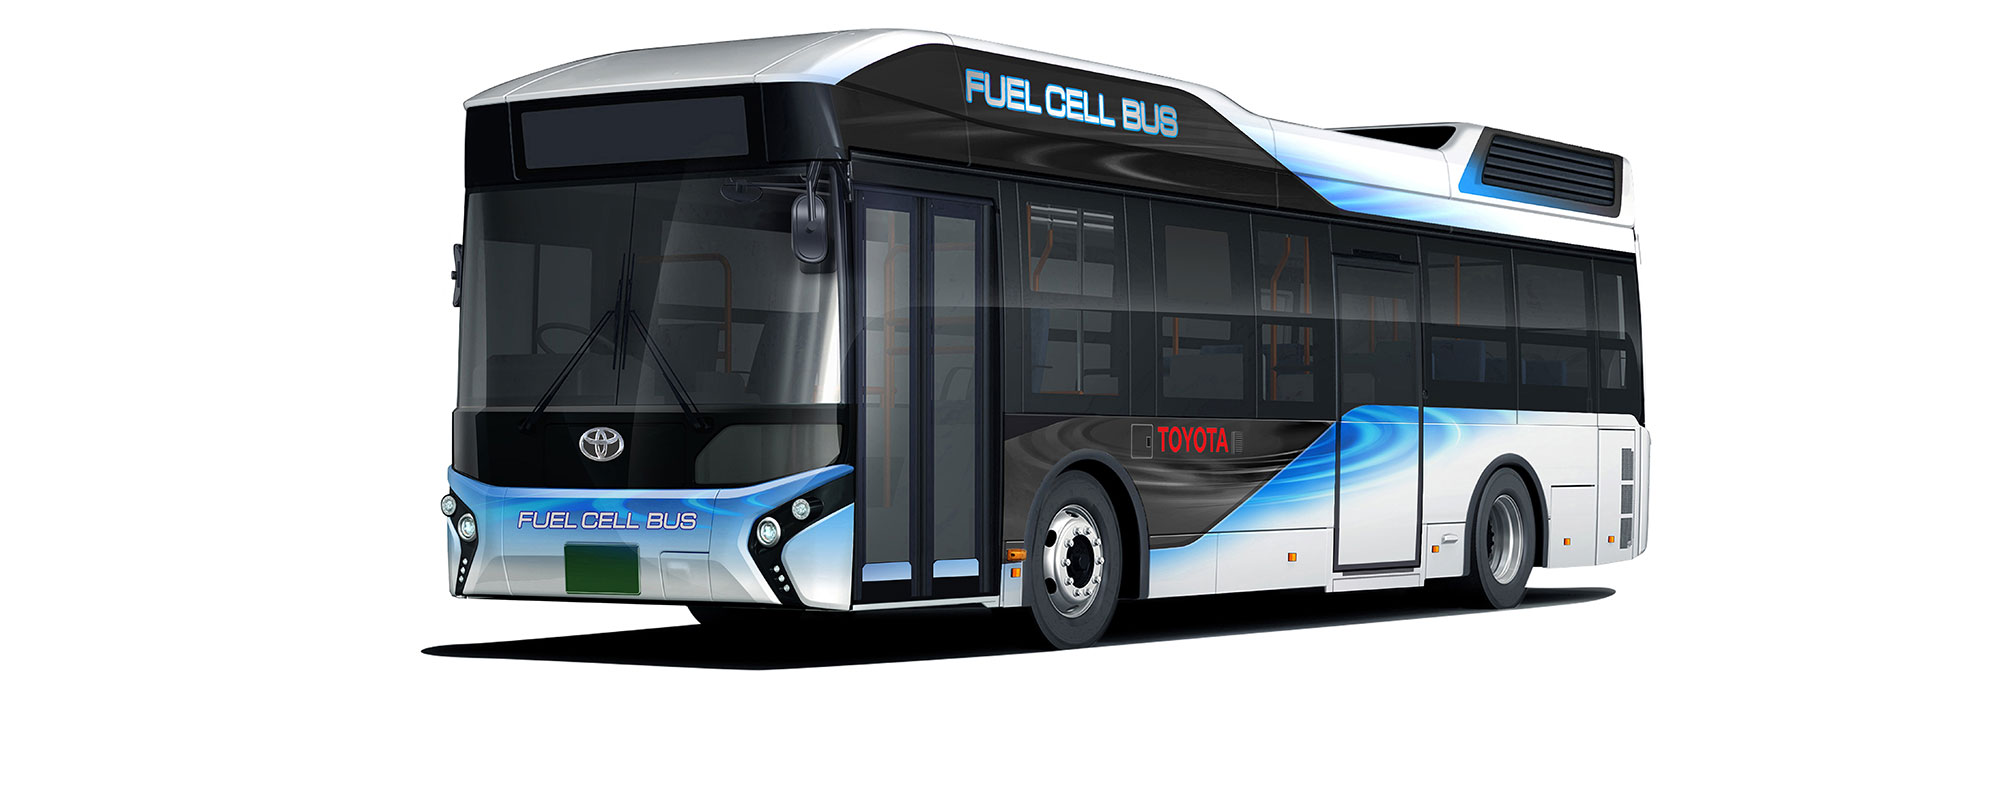 Toyota start verkoop Fuel Cell bussen in Japan